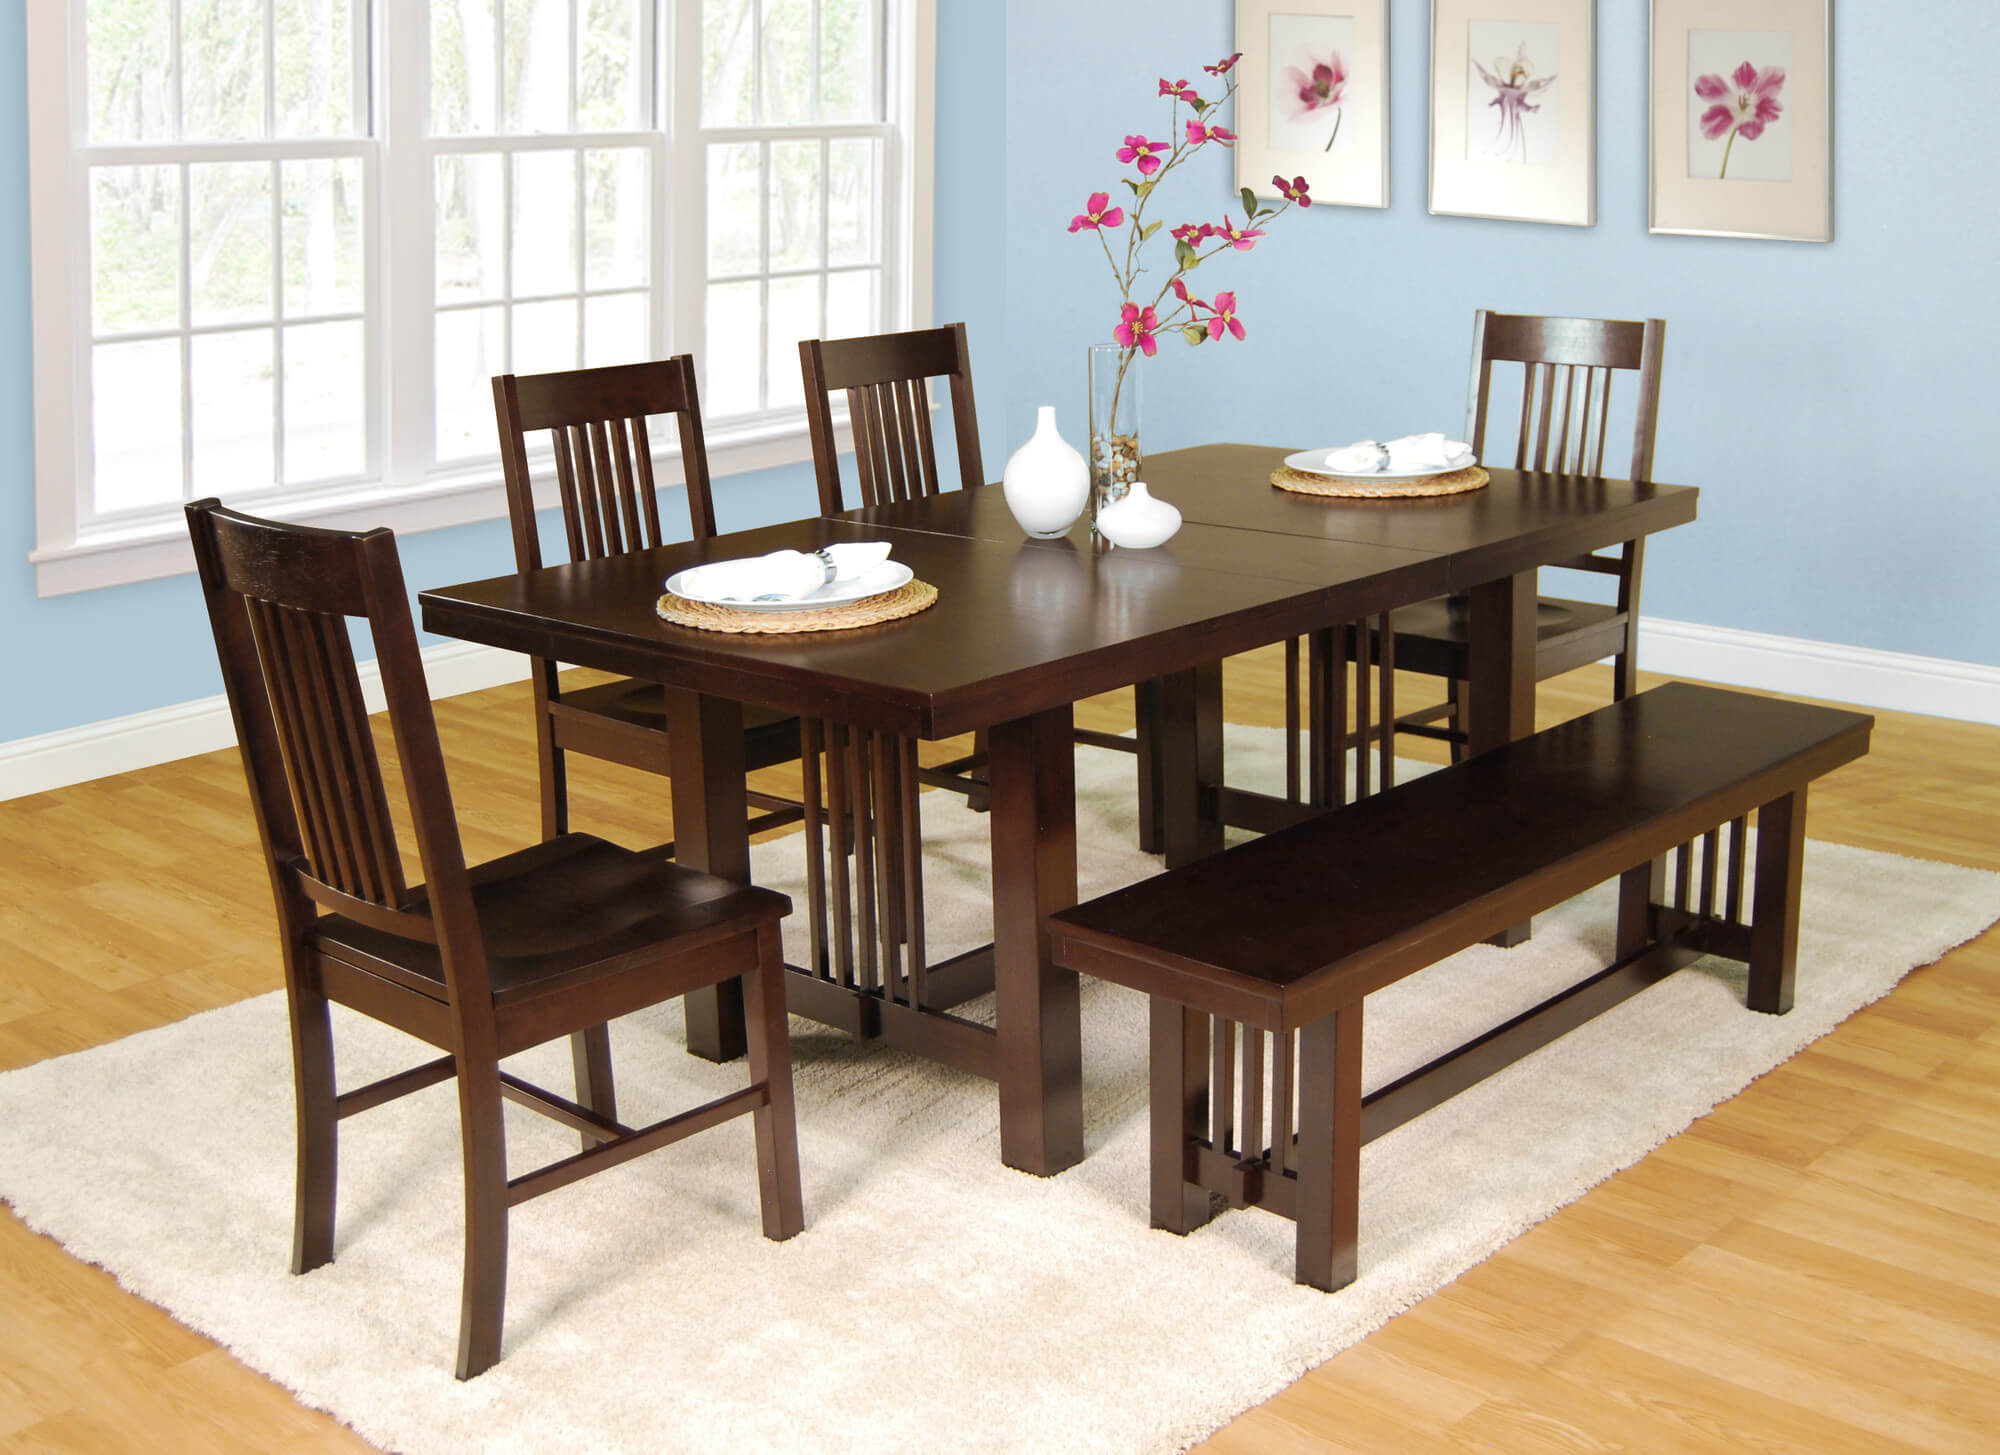 Dining Room Table With Benches D Art Collection Crestwood Piece Dining Set Privacy Pinterest Film